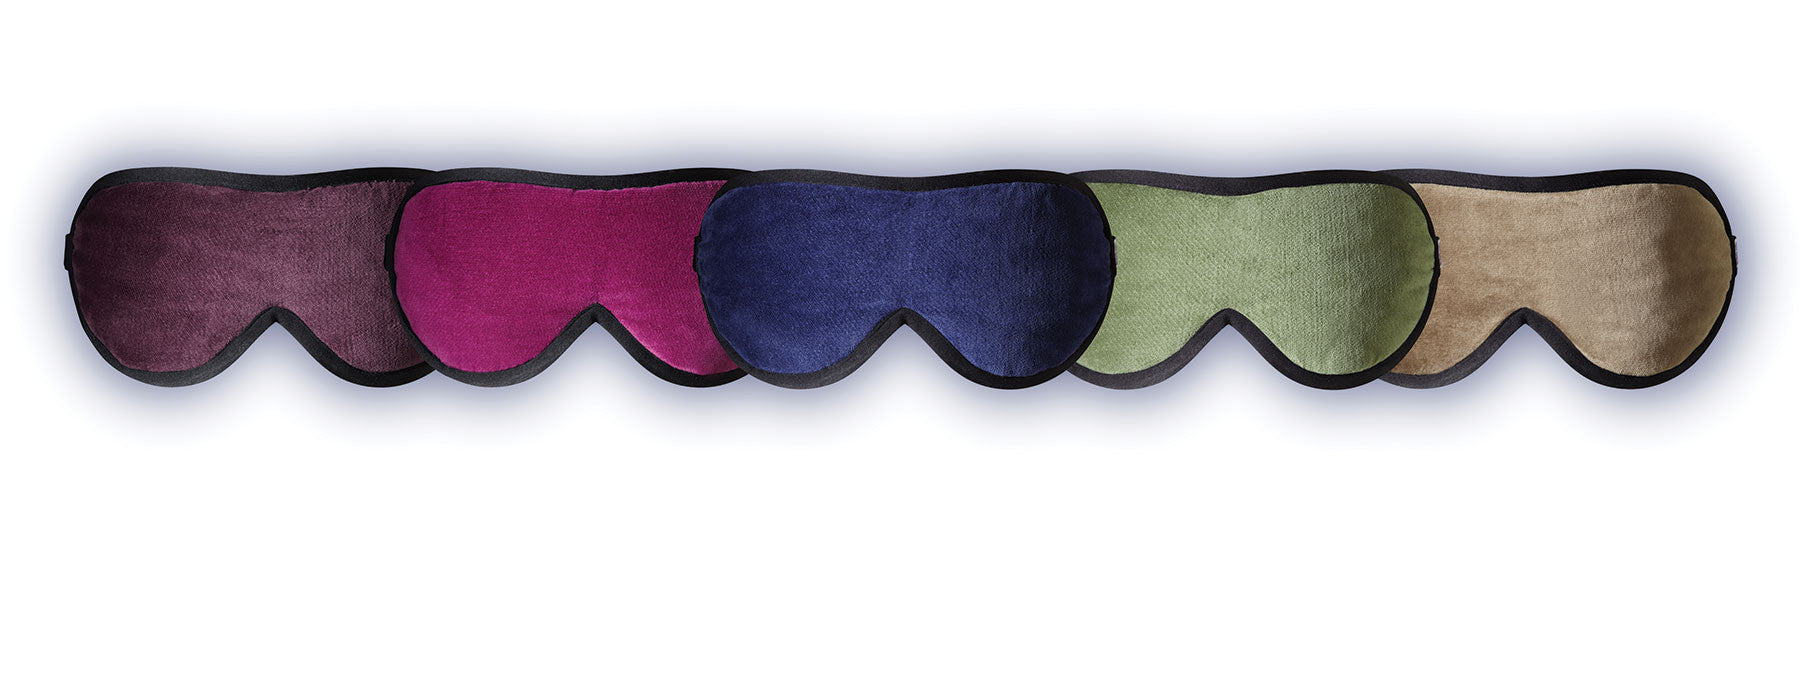 Handmade luxury sleep mask